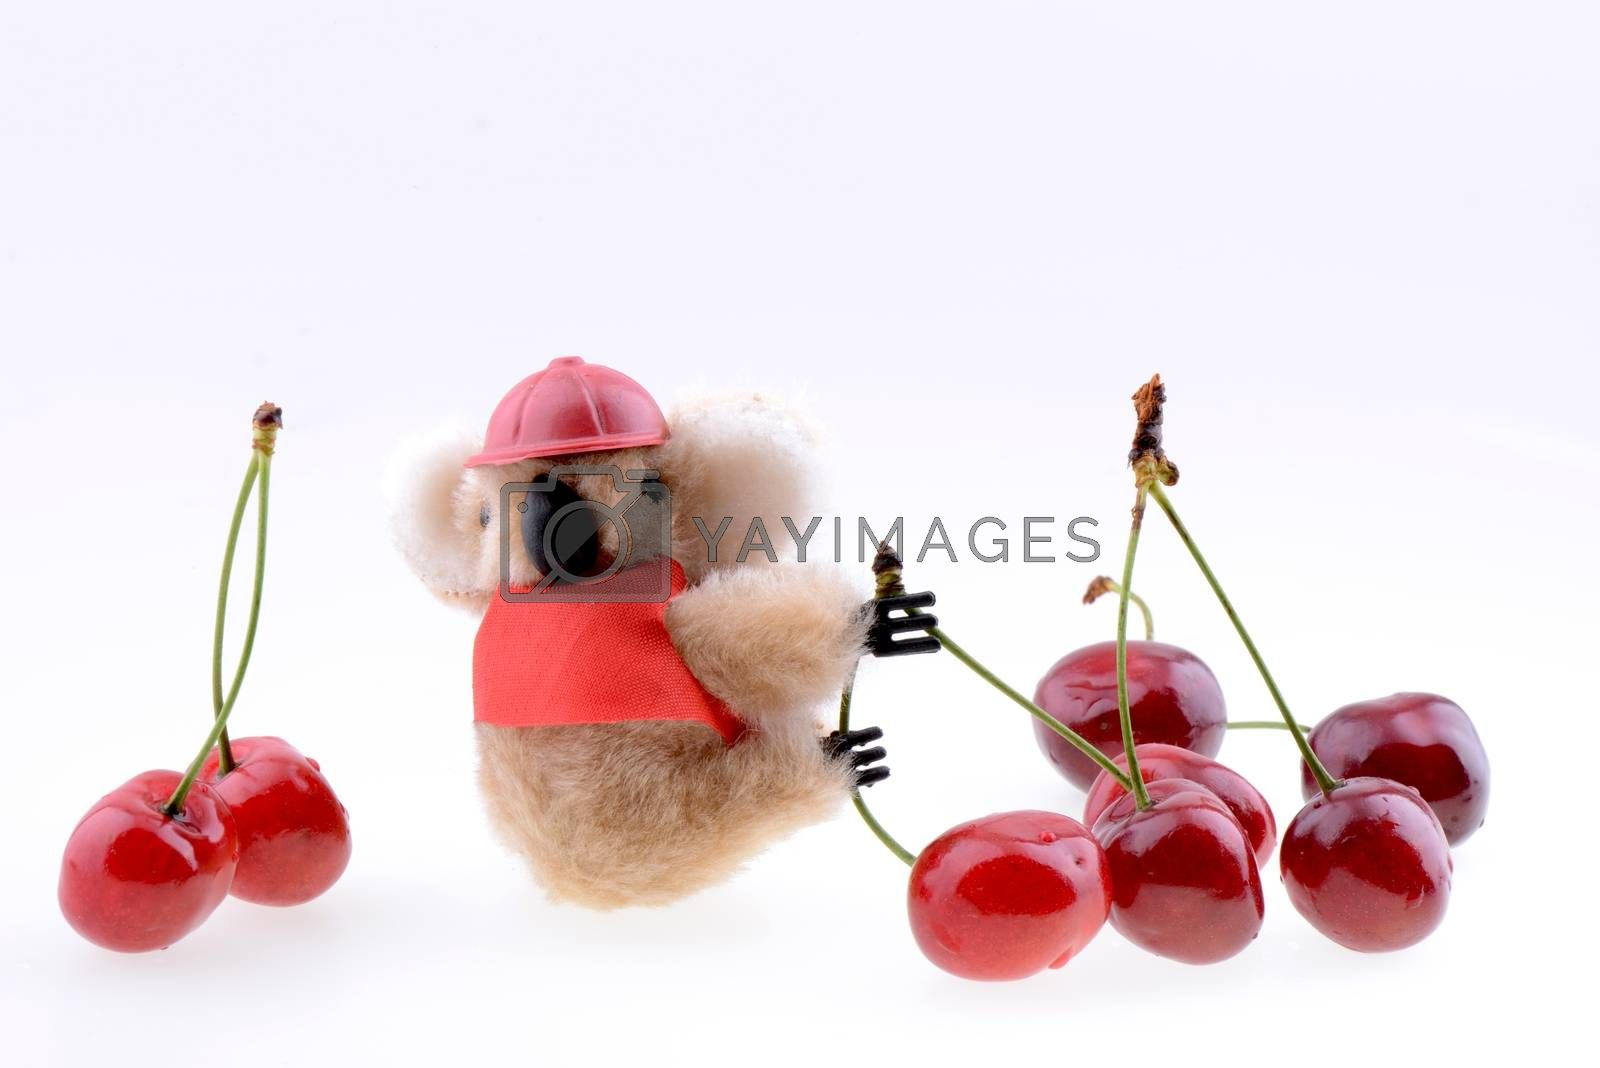 Toy koala collecting Sweet cherries isolated on a white background